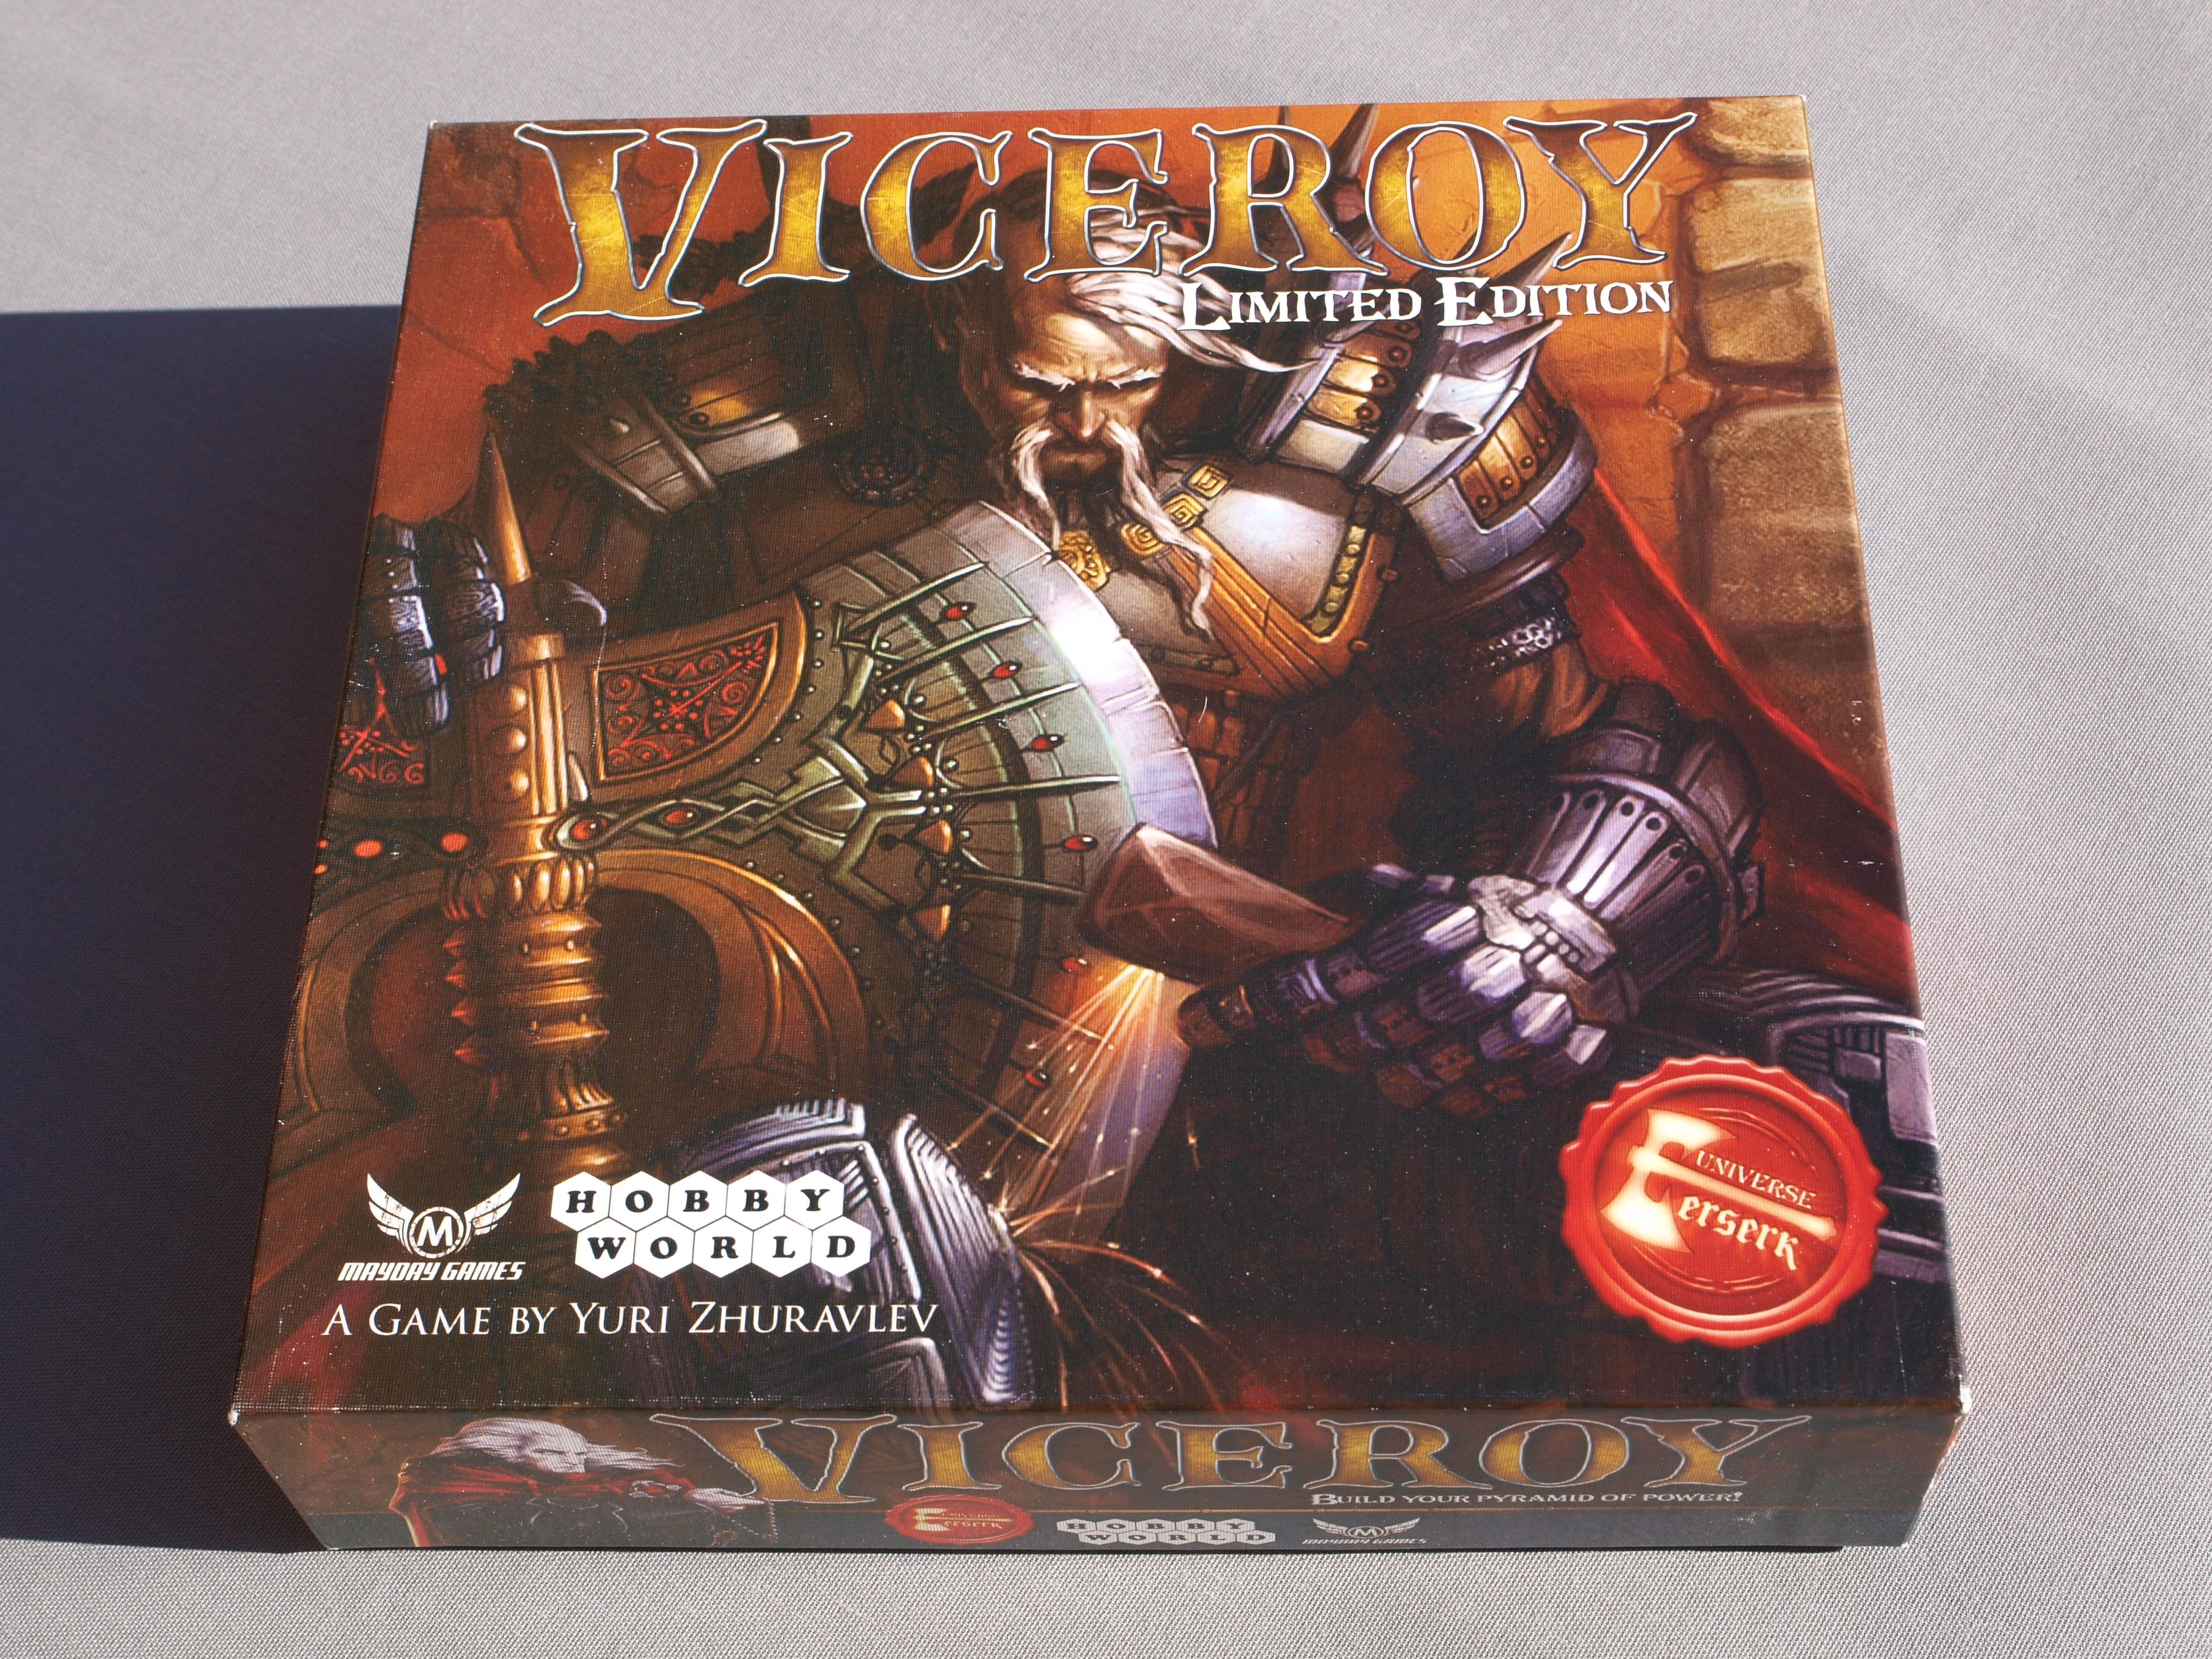 Viceroy - Limited Edition